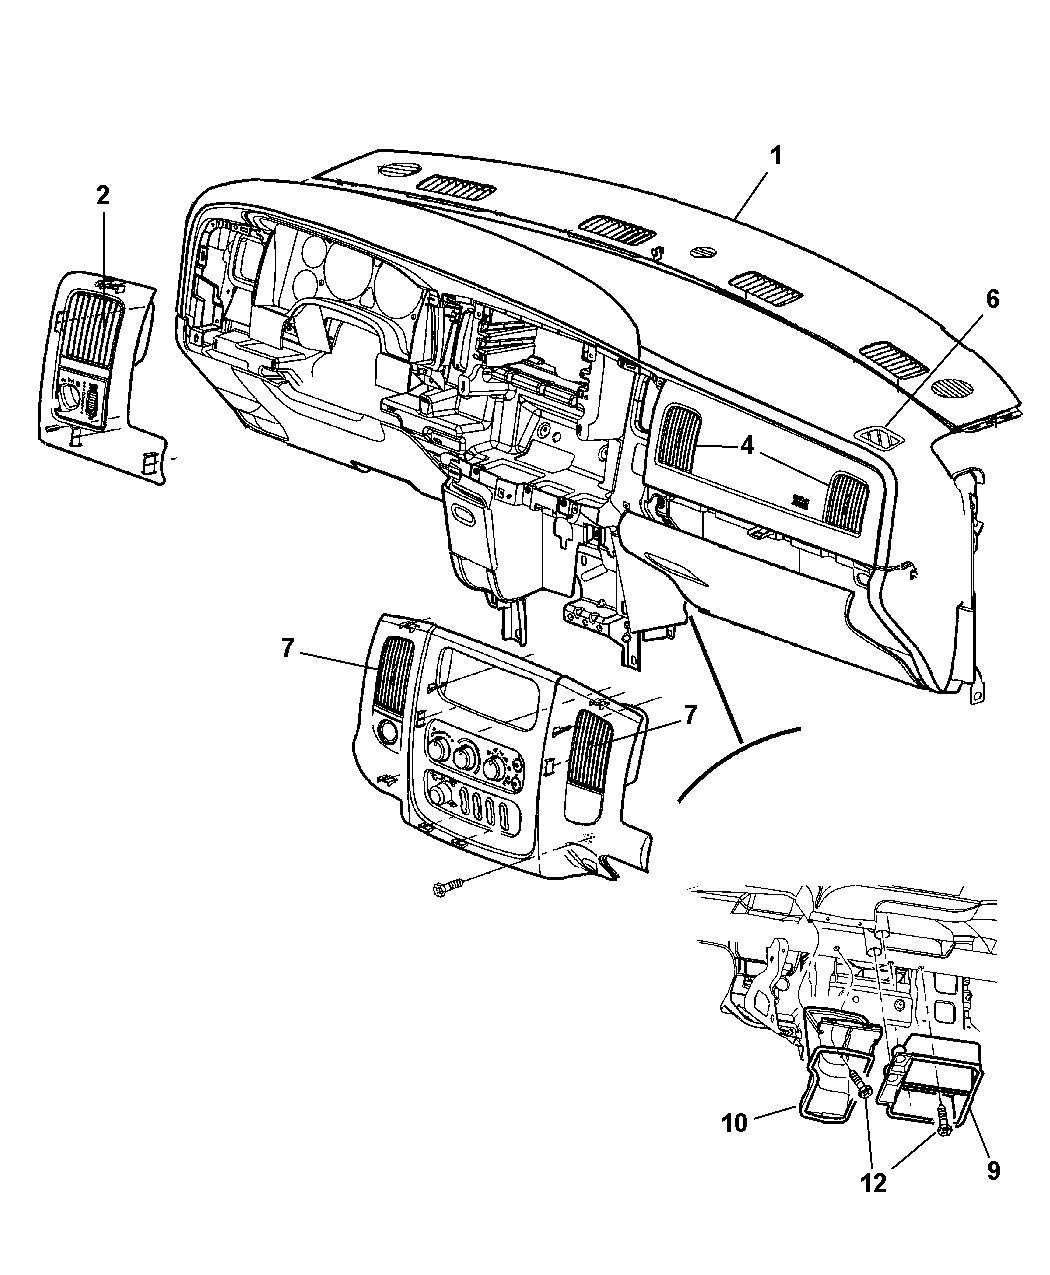 Wiring Diagram: 29 Dodge Ram 1500 Parts Diagram